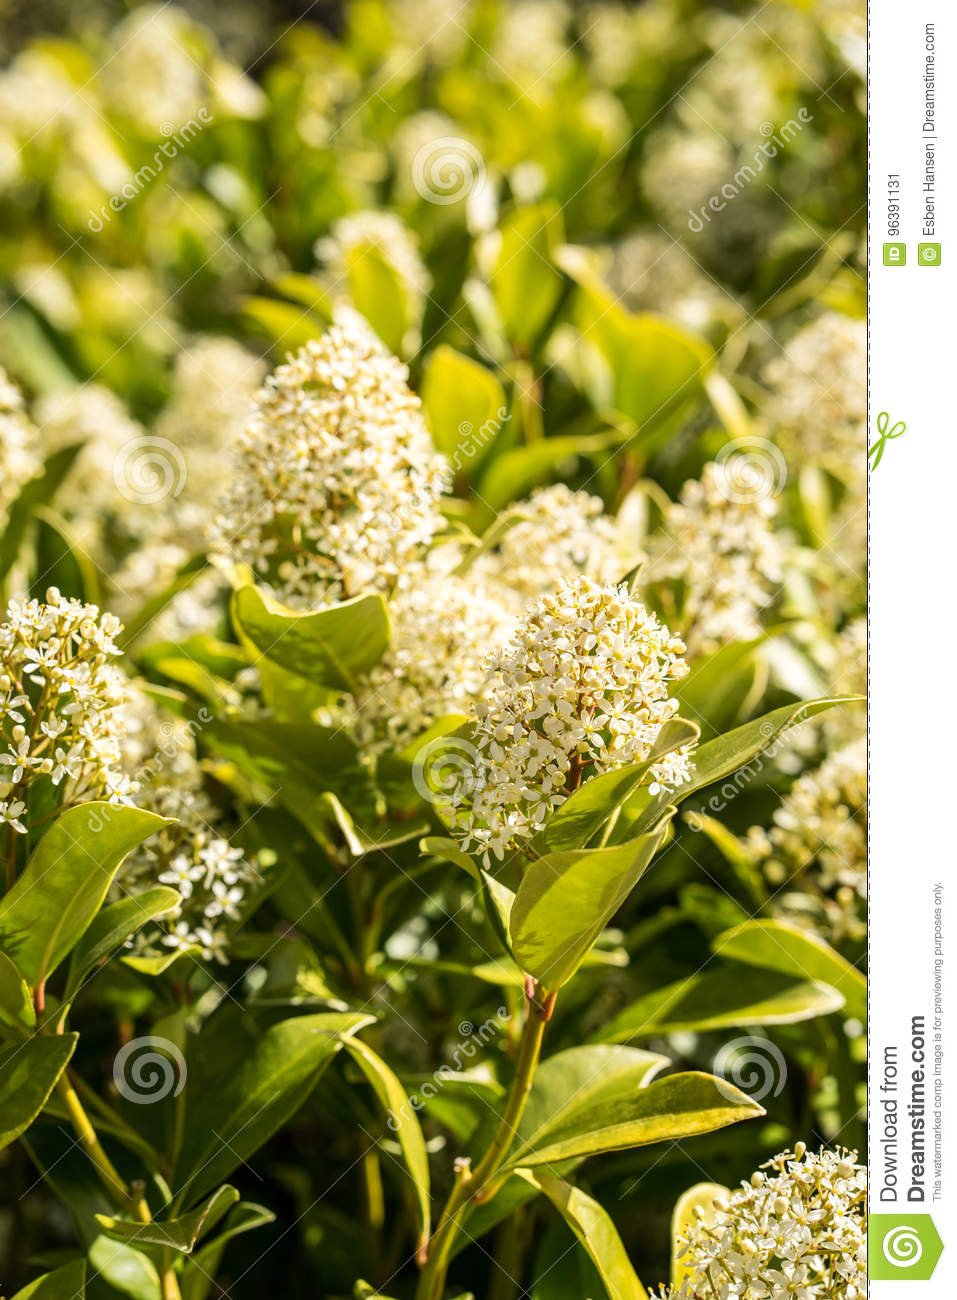 Bush Flowers With Small White Flowers Standing In The Spring Stock